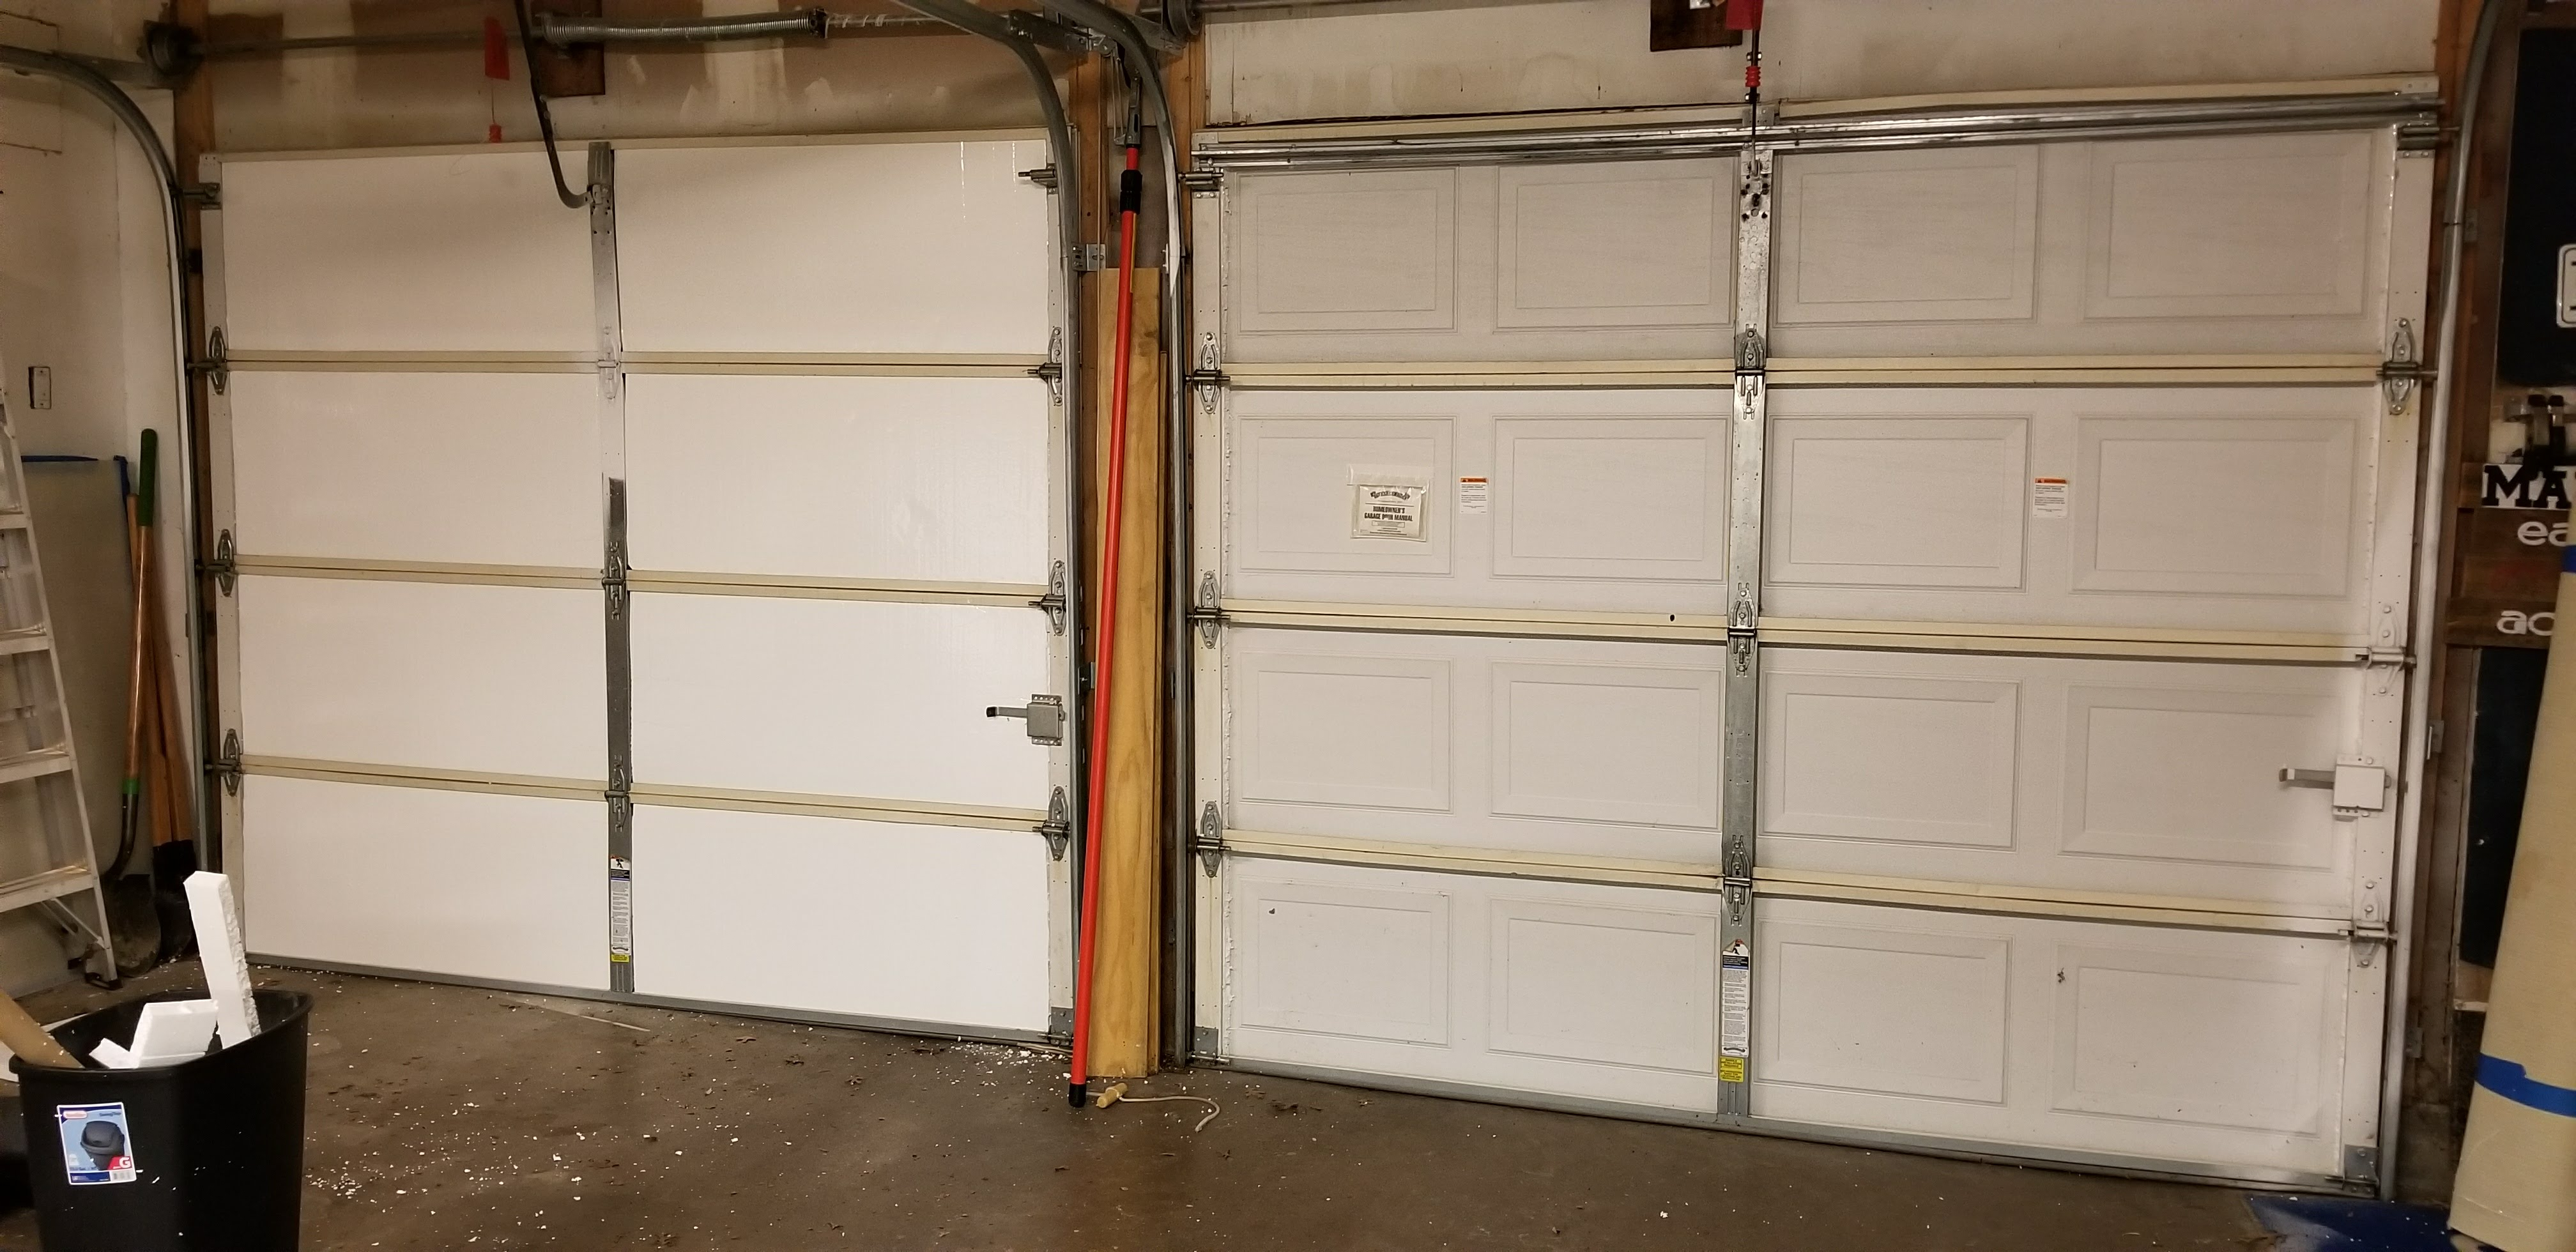 radord on three thick premium steelclassicgaragedoor door to steel the series insulated model diego safe classic free san depending by cfc is doors sandwiched environmentally garage insulation layer